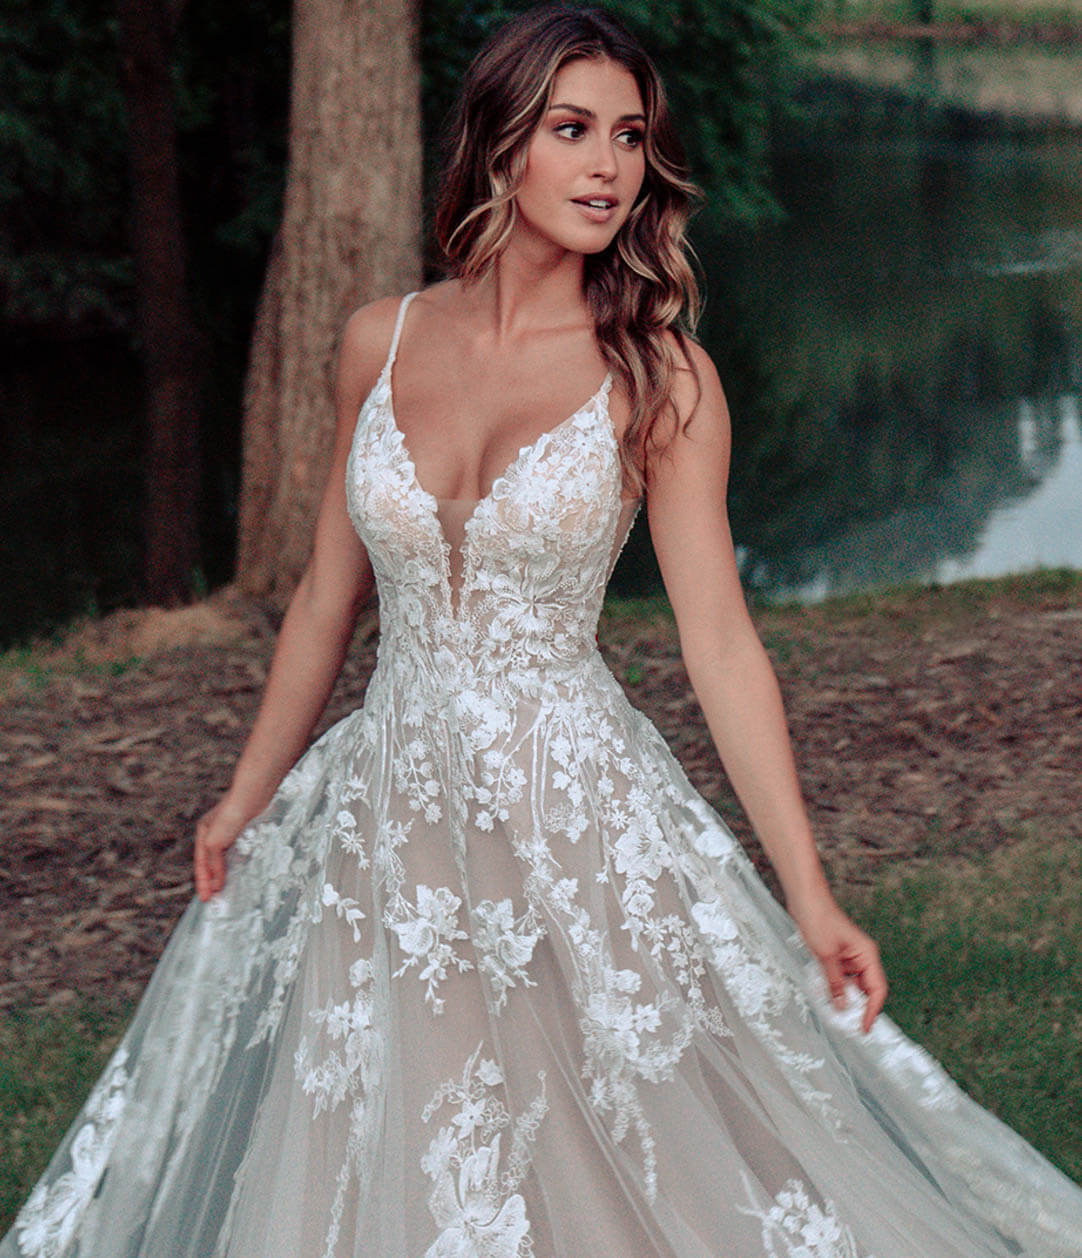 Photo of Model Wearing a Allure Bridals Gown